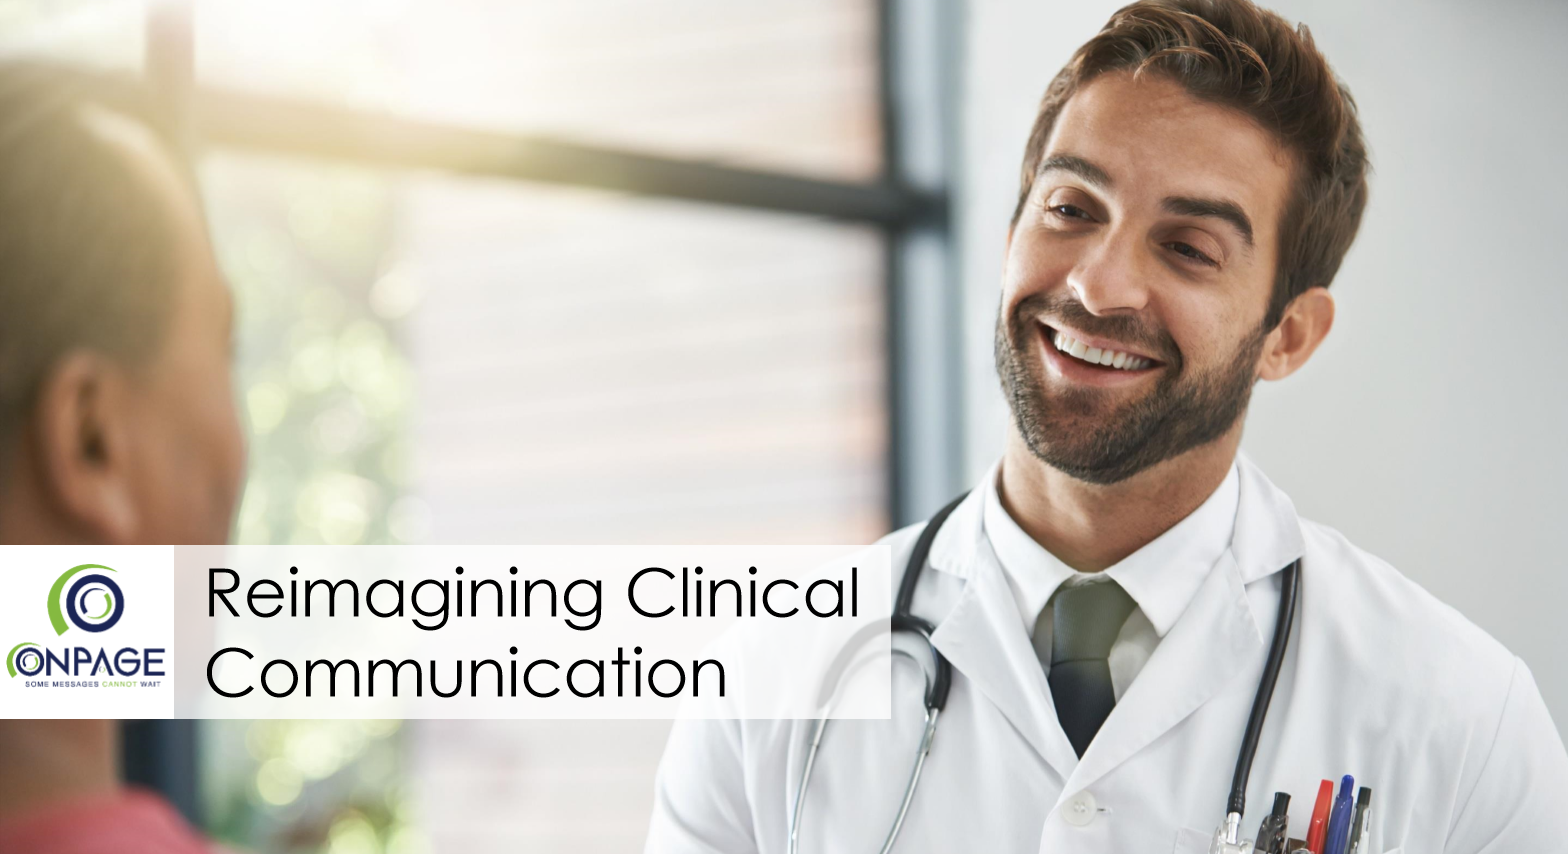 Clinical communication